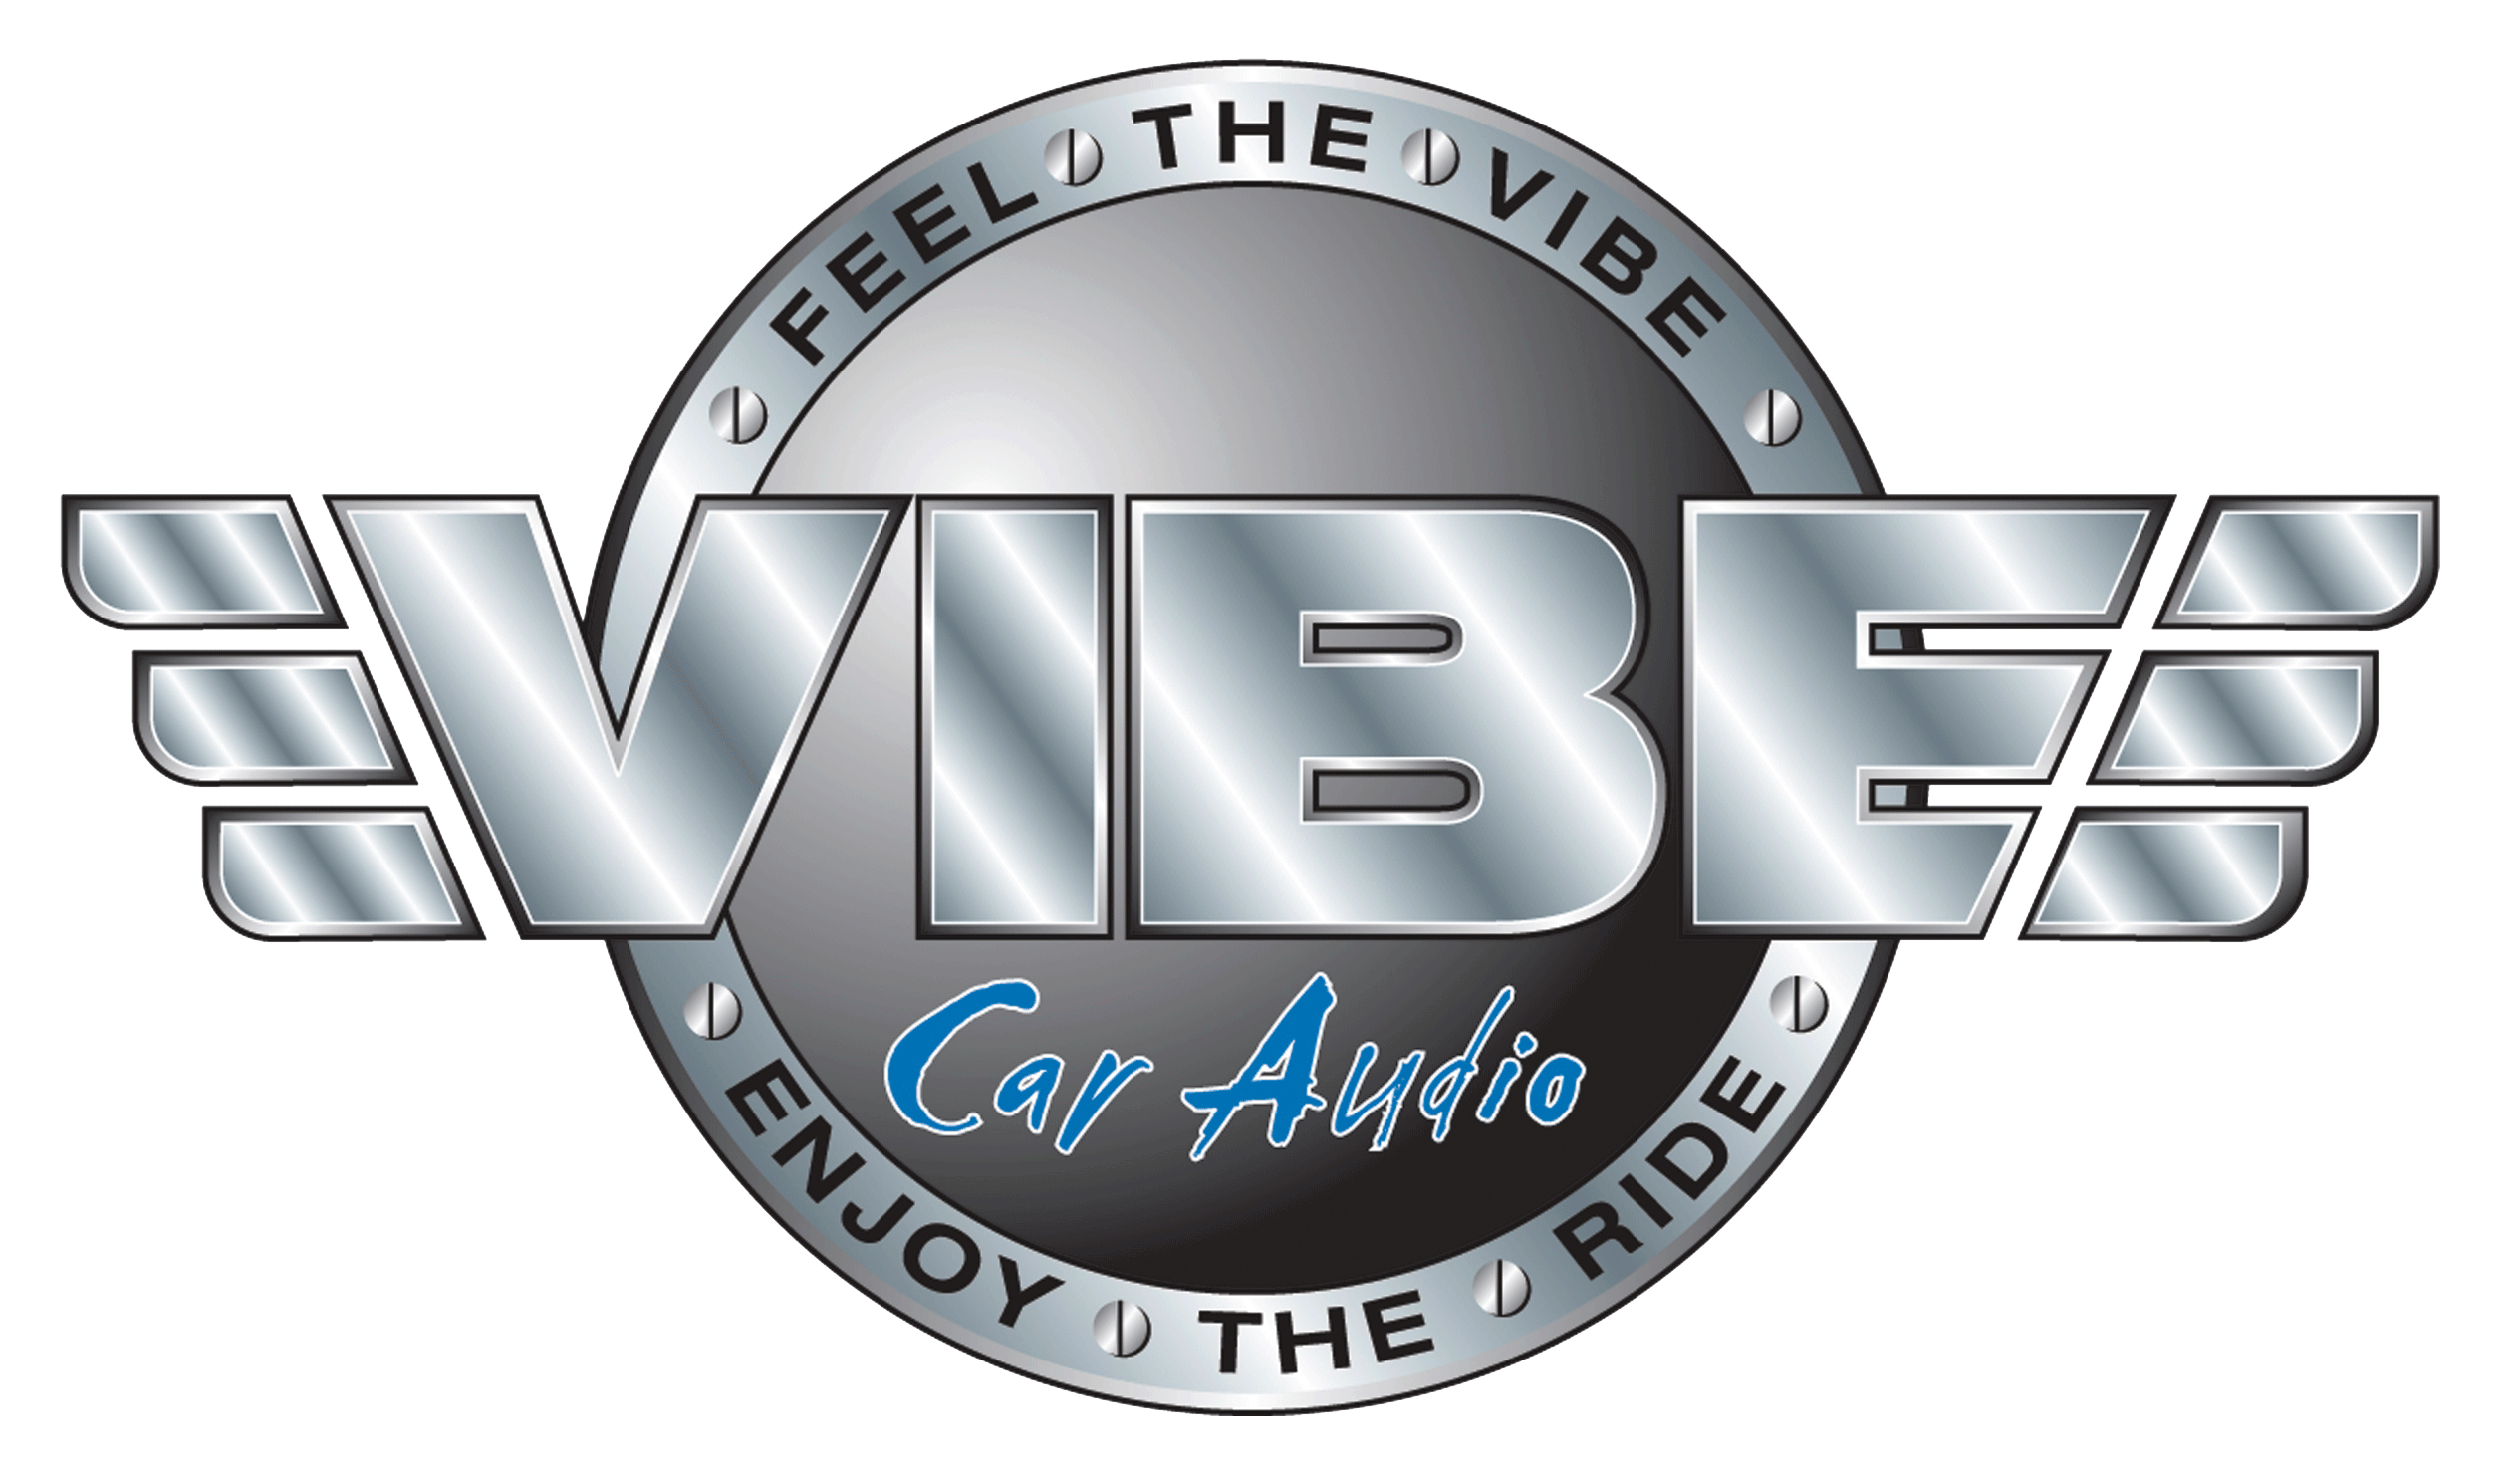 Vibe Car Audio – Feel the Vibe – Enjoy the Ride